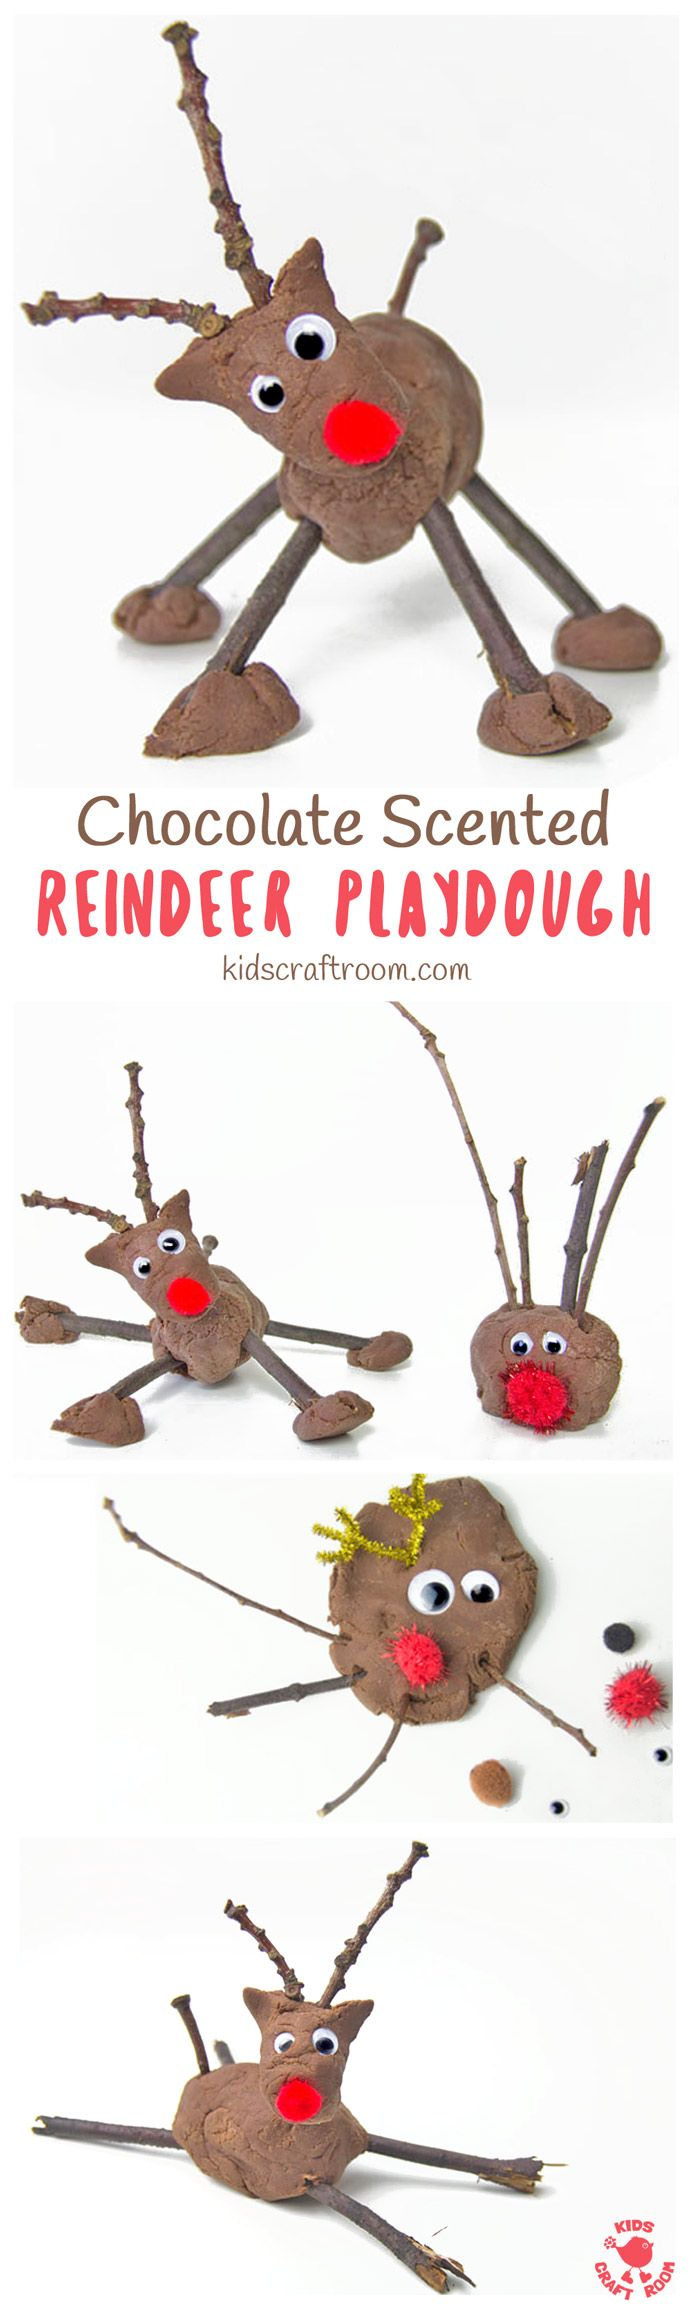 CHOCOLATE SCENTED REINDEER PLAY DOUGH is such a fun Christmas sensory play activity for kids. This no-cook play dough recipe is easy to make and so fun. Add sticks, eyes and red noses for an adorable reindeer craft session. #sensoryplay #christmas #sensor